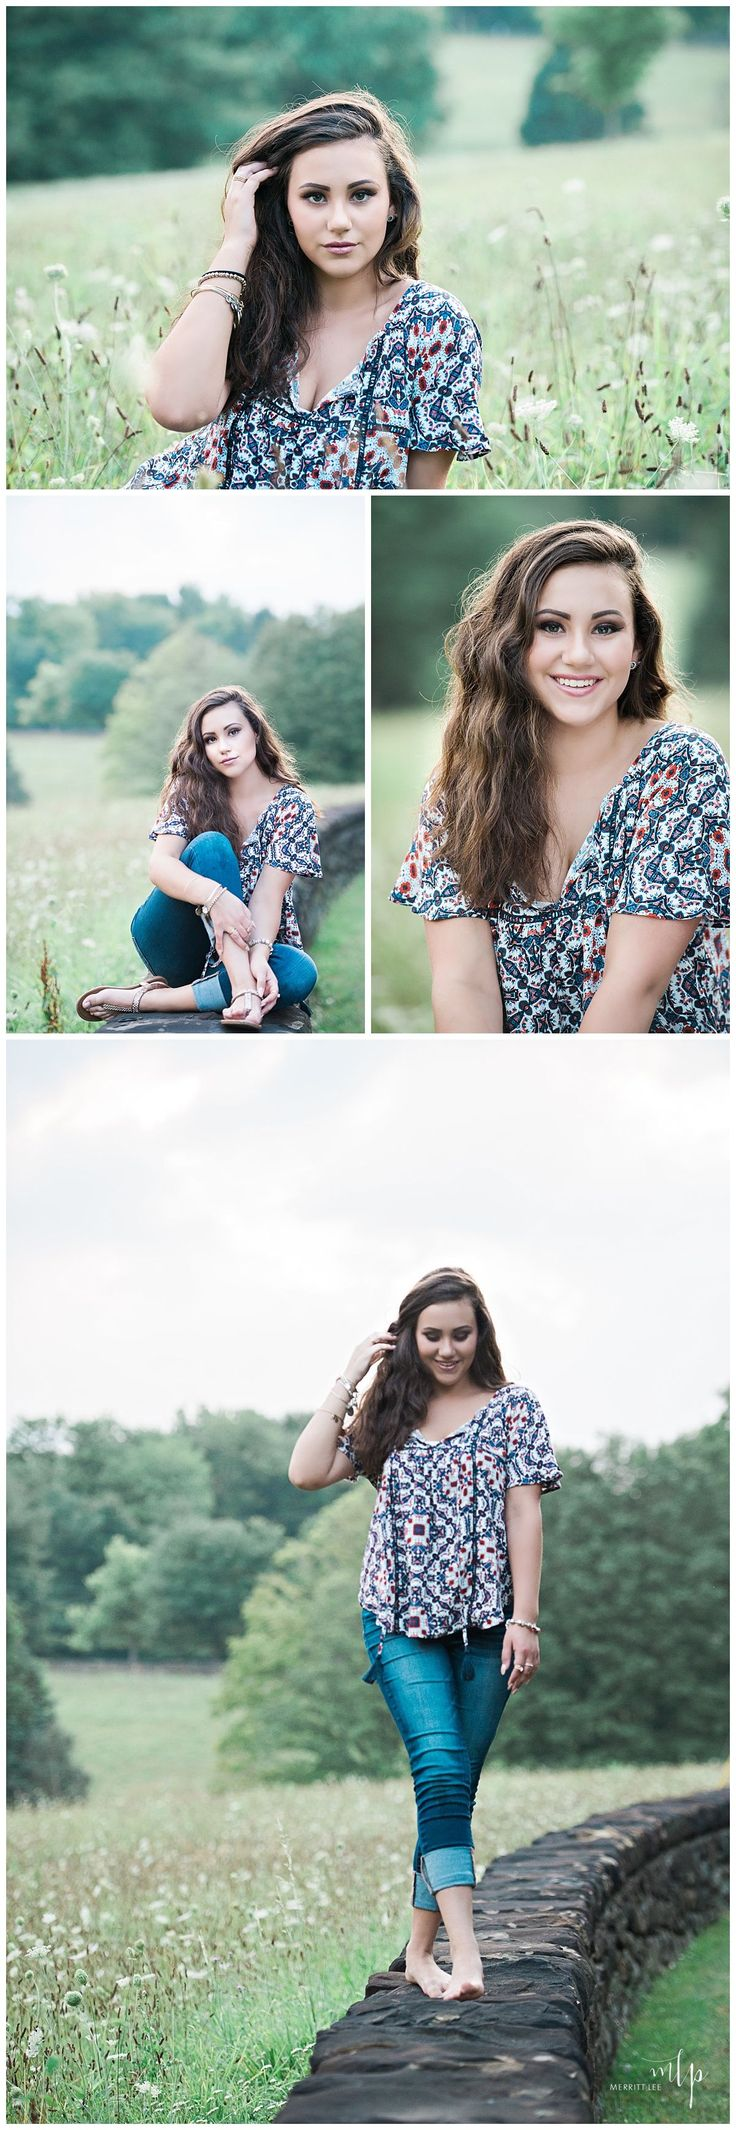 Outdoor Senior Pic Idea! Styled shoot - Hairstyle - Loose Curls - Makeup - Fashion - Natural - Loose Curls - Unique Senior Pictures - Teen Fashion - Senior Inspo - Trendy - Senior Girl Poses - Sewickley Senior Pictures - Pittsburgh Senior Pictures - By Merritt Lee Photography #TeenFashion